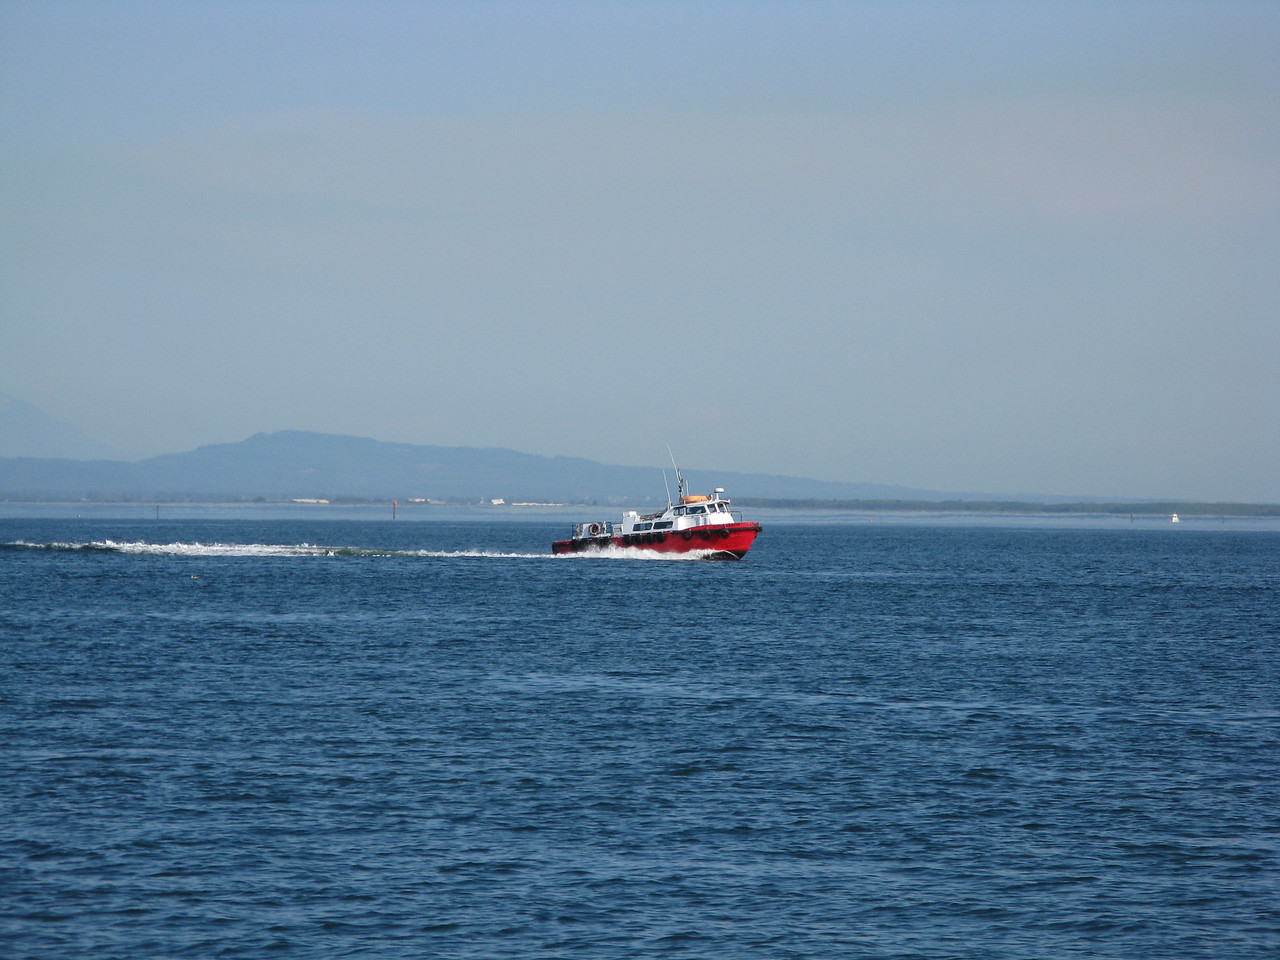 The pilot boat raced back to Anacortes.